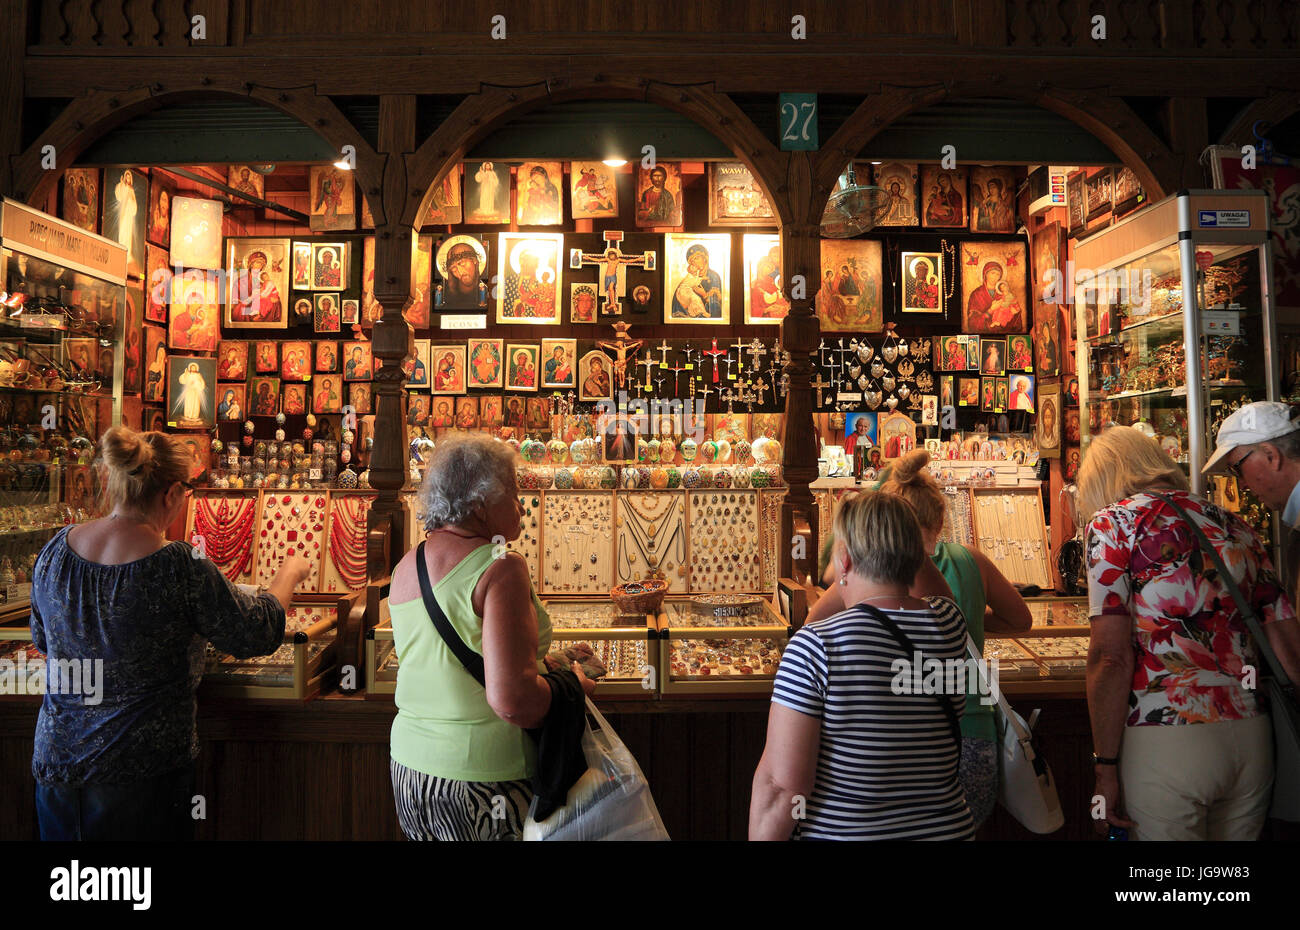 Souvenirshops in the Cloth Halls (Sukiennice) at Rynek, Krakow, Poland, Europe - Stock Image